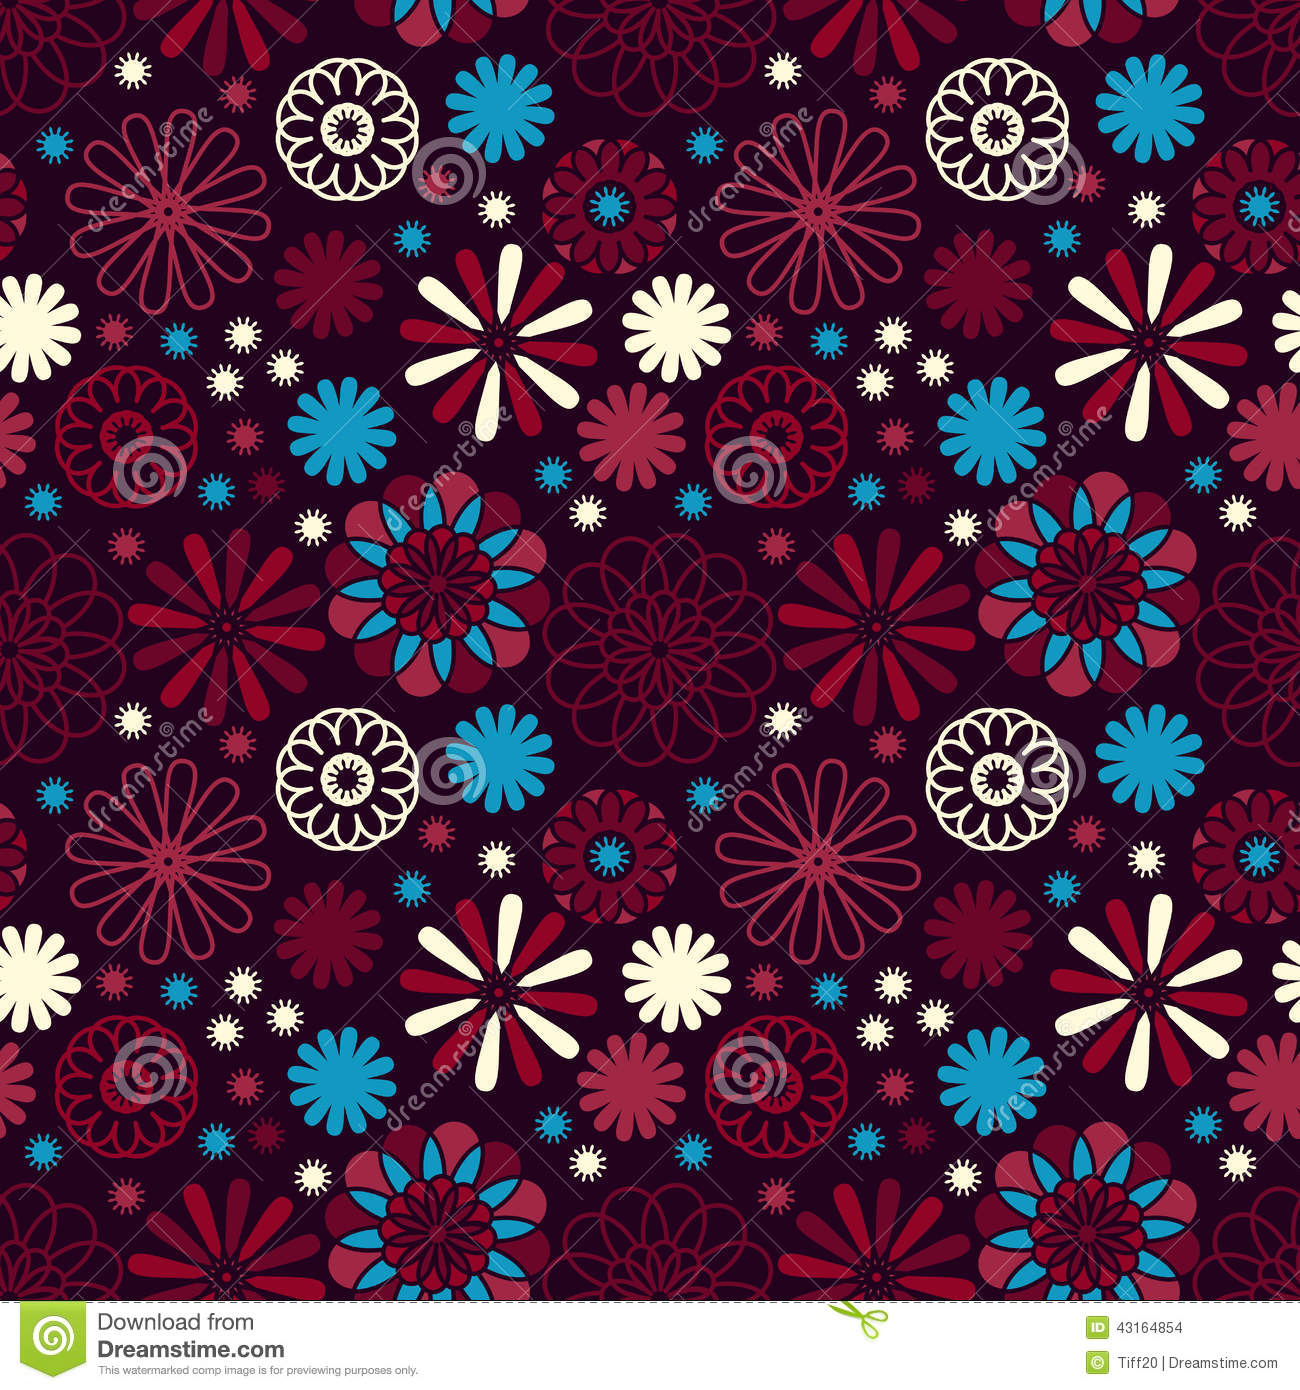 Simple flower pattern background - photo#23